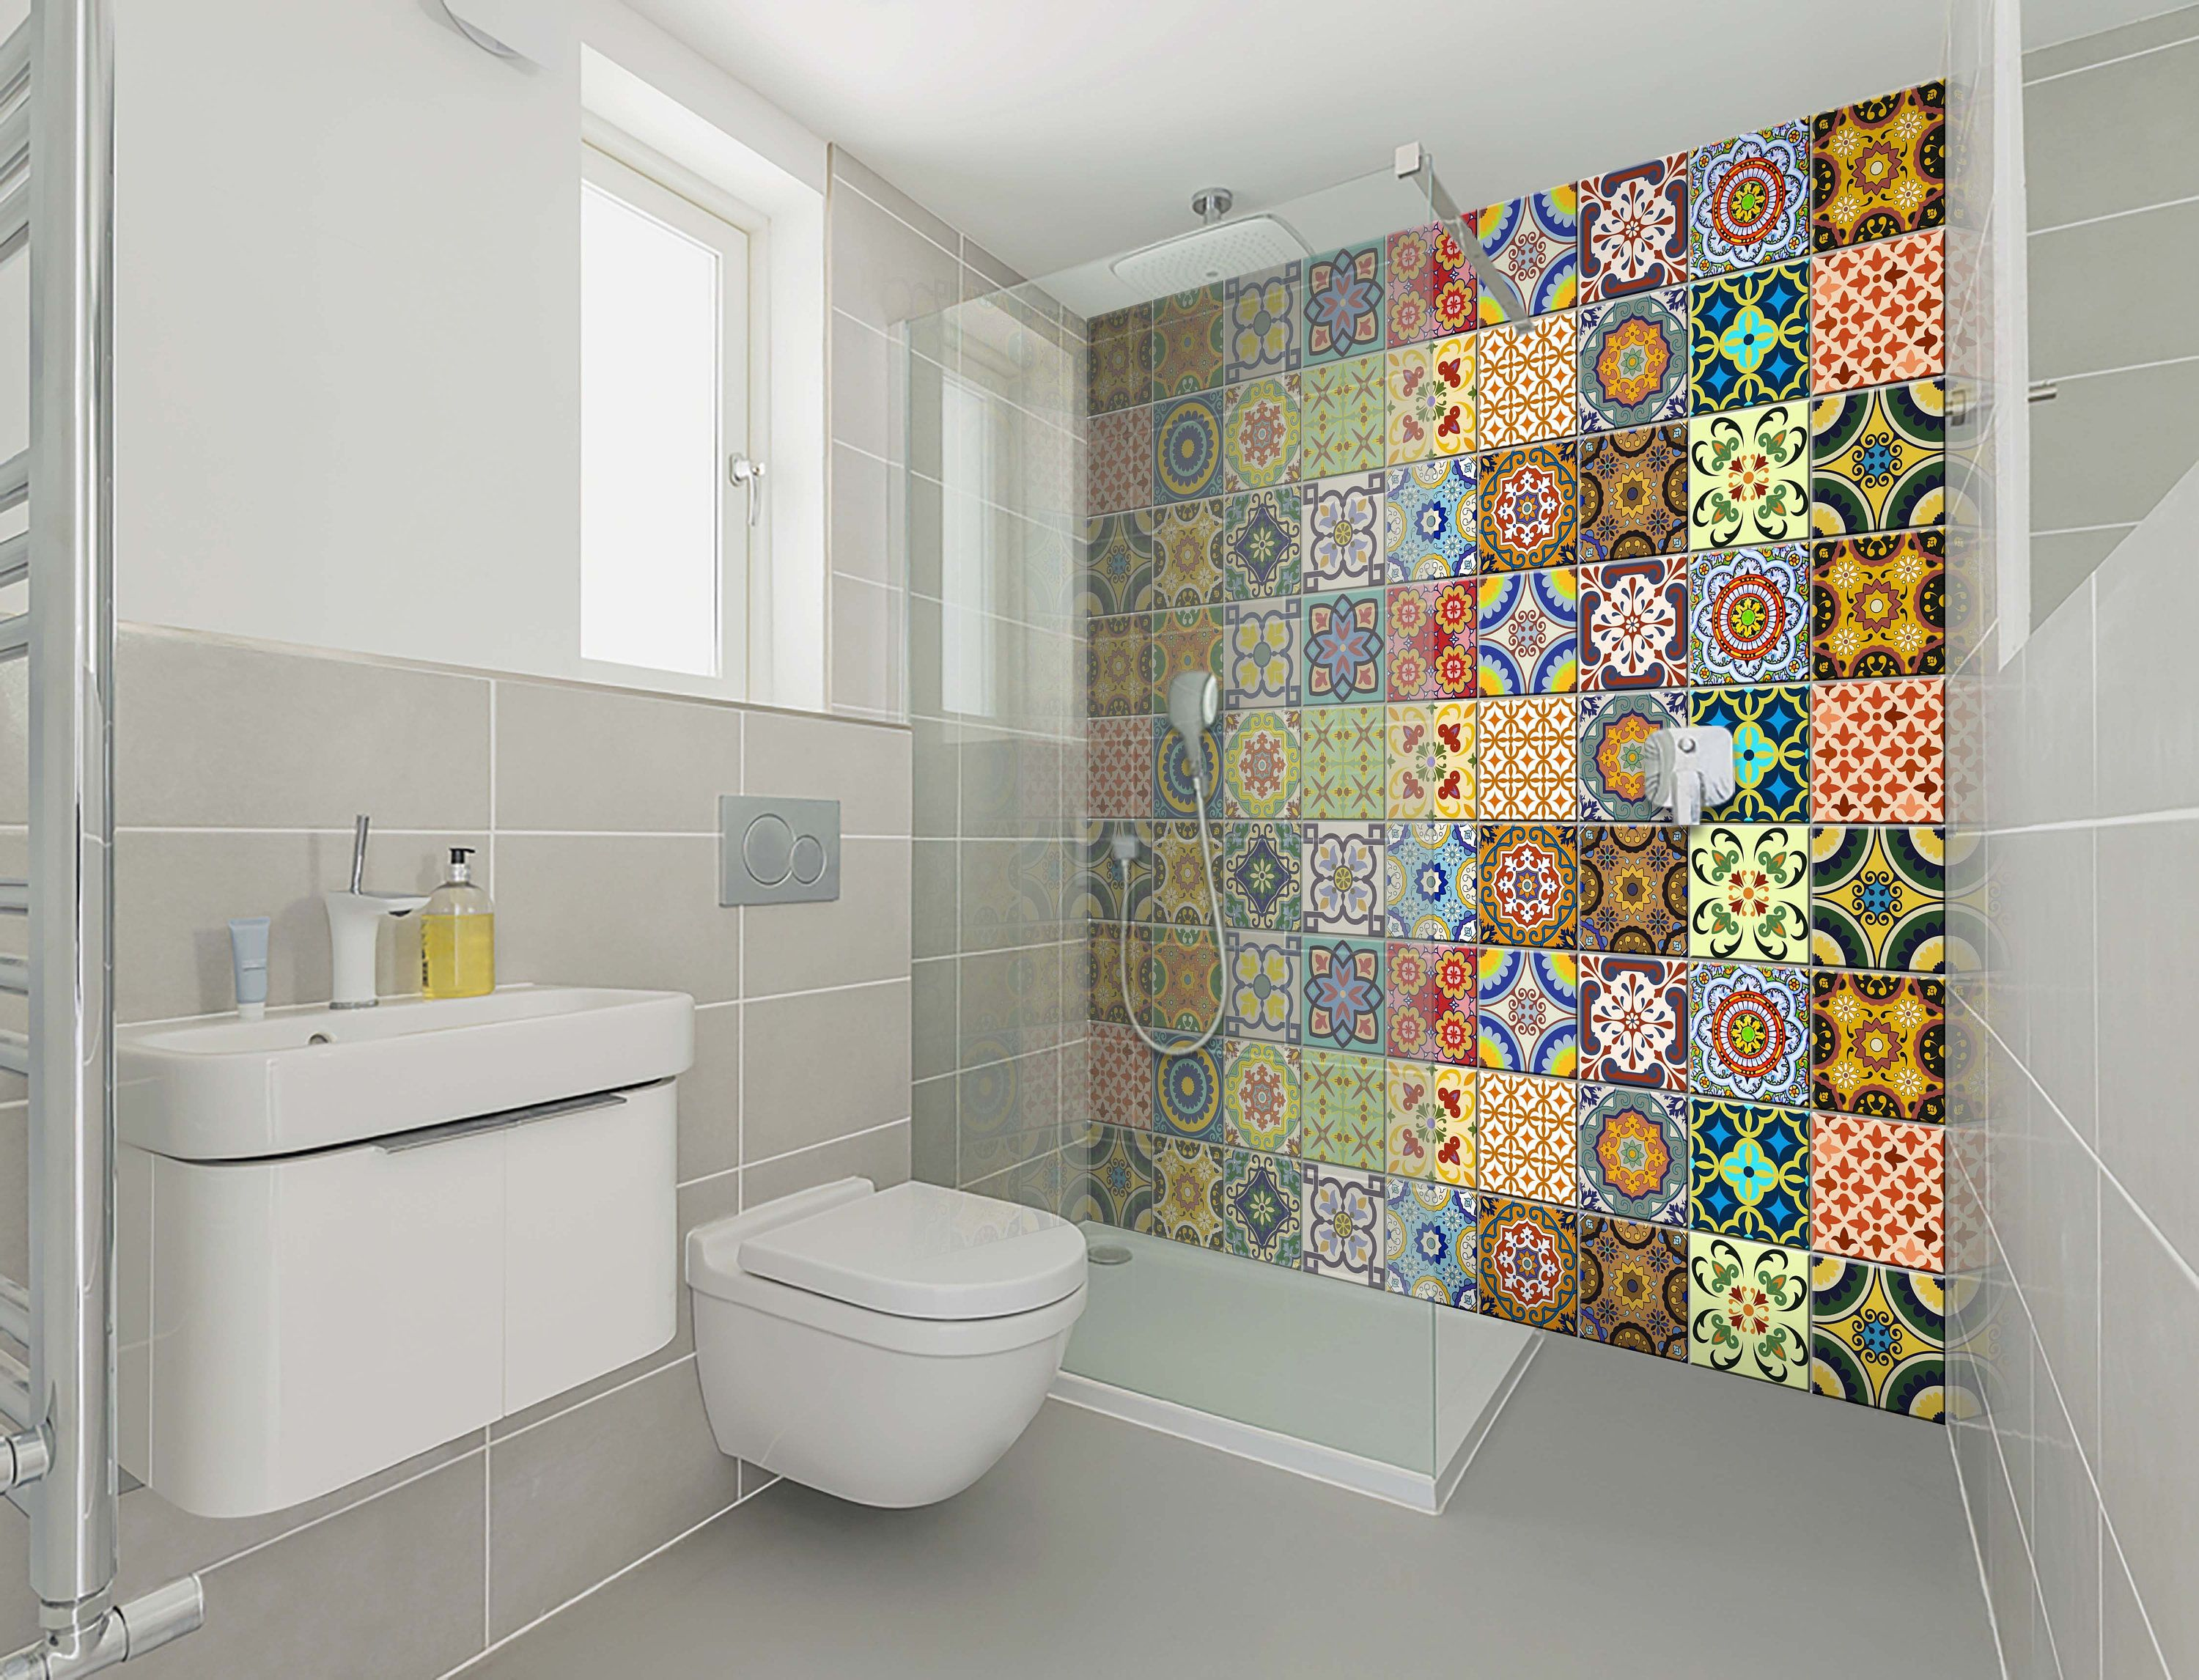 carrelage stickers spanish Set of 24 Tiles Decals Tiles ...